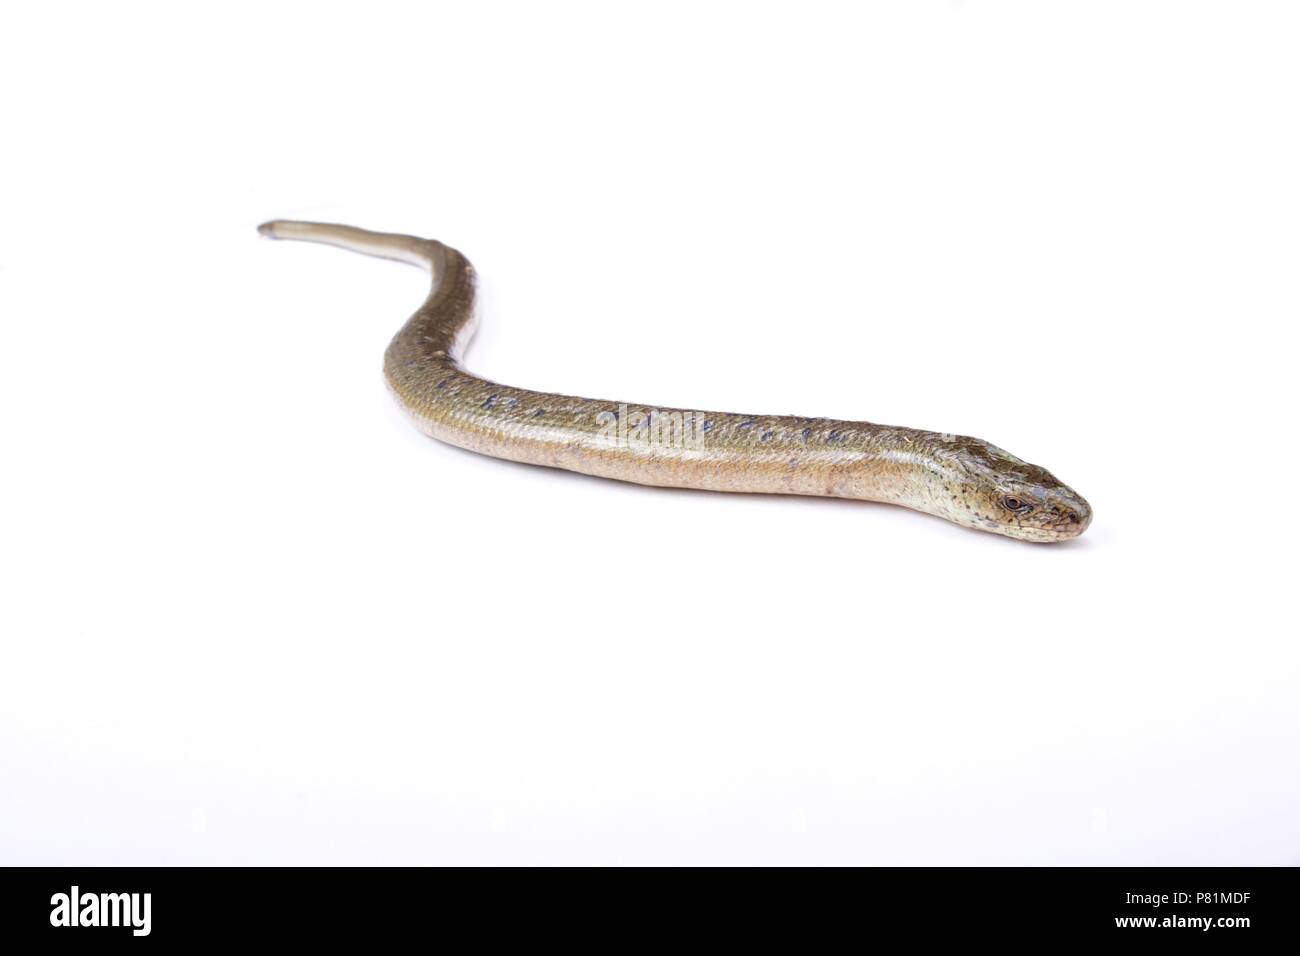 Eastern slow worm (Anguis fragilis colchicus) - Stock Image